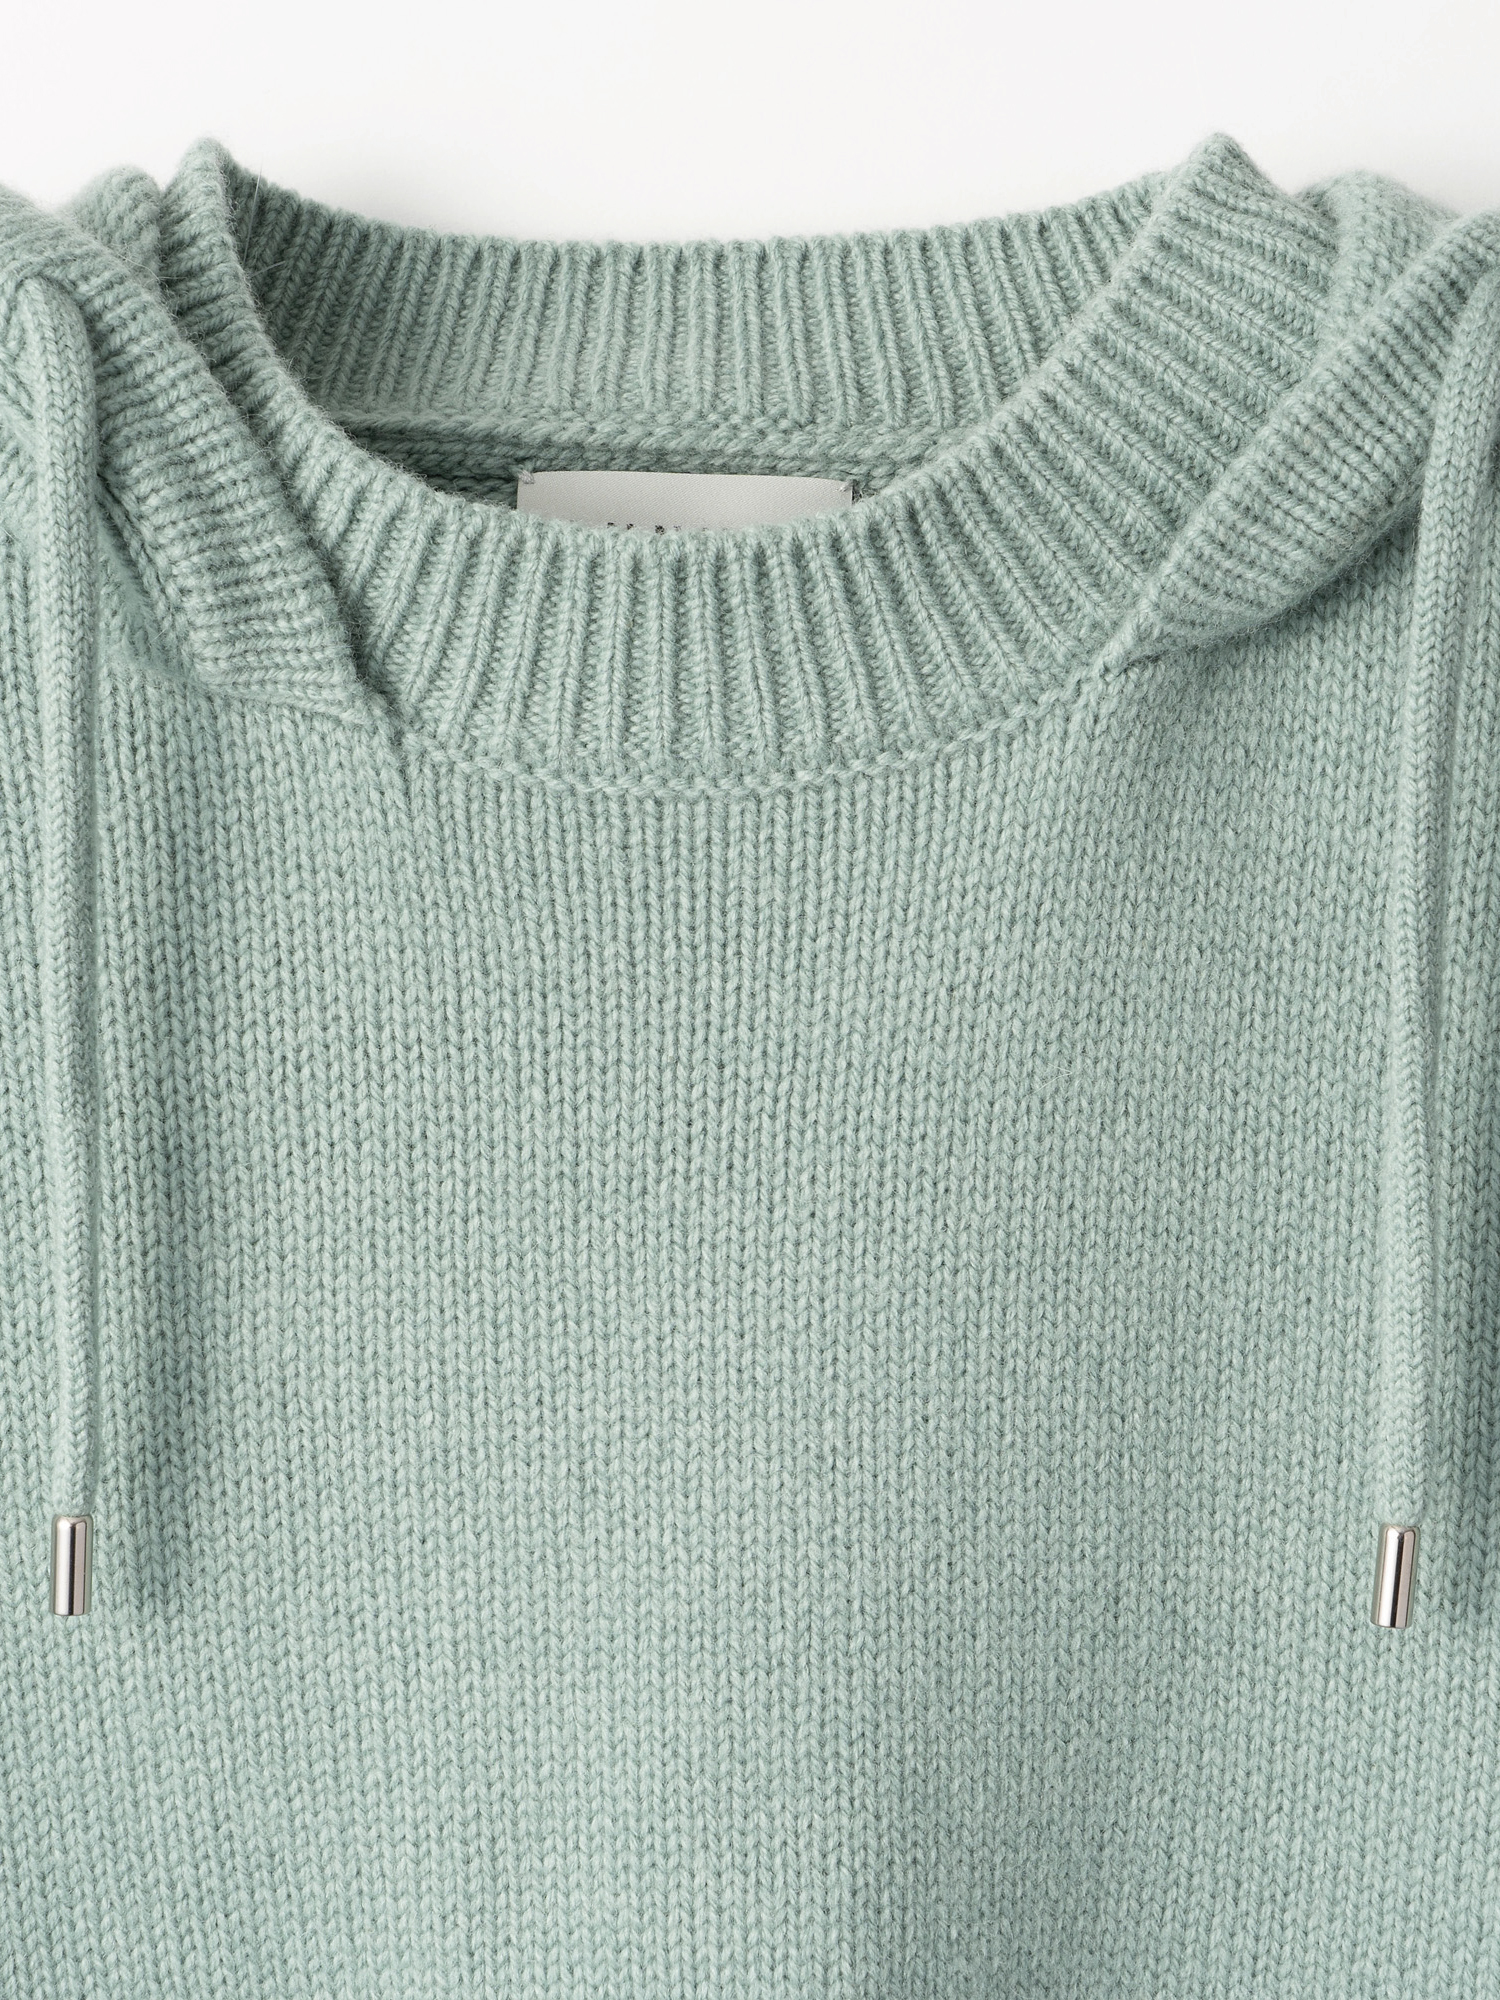 Knit Parkaのサムネイル6